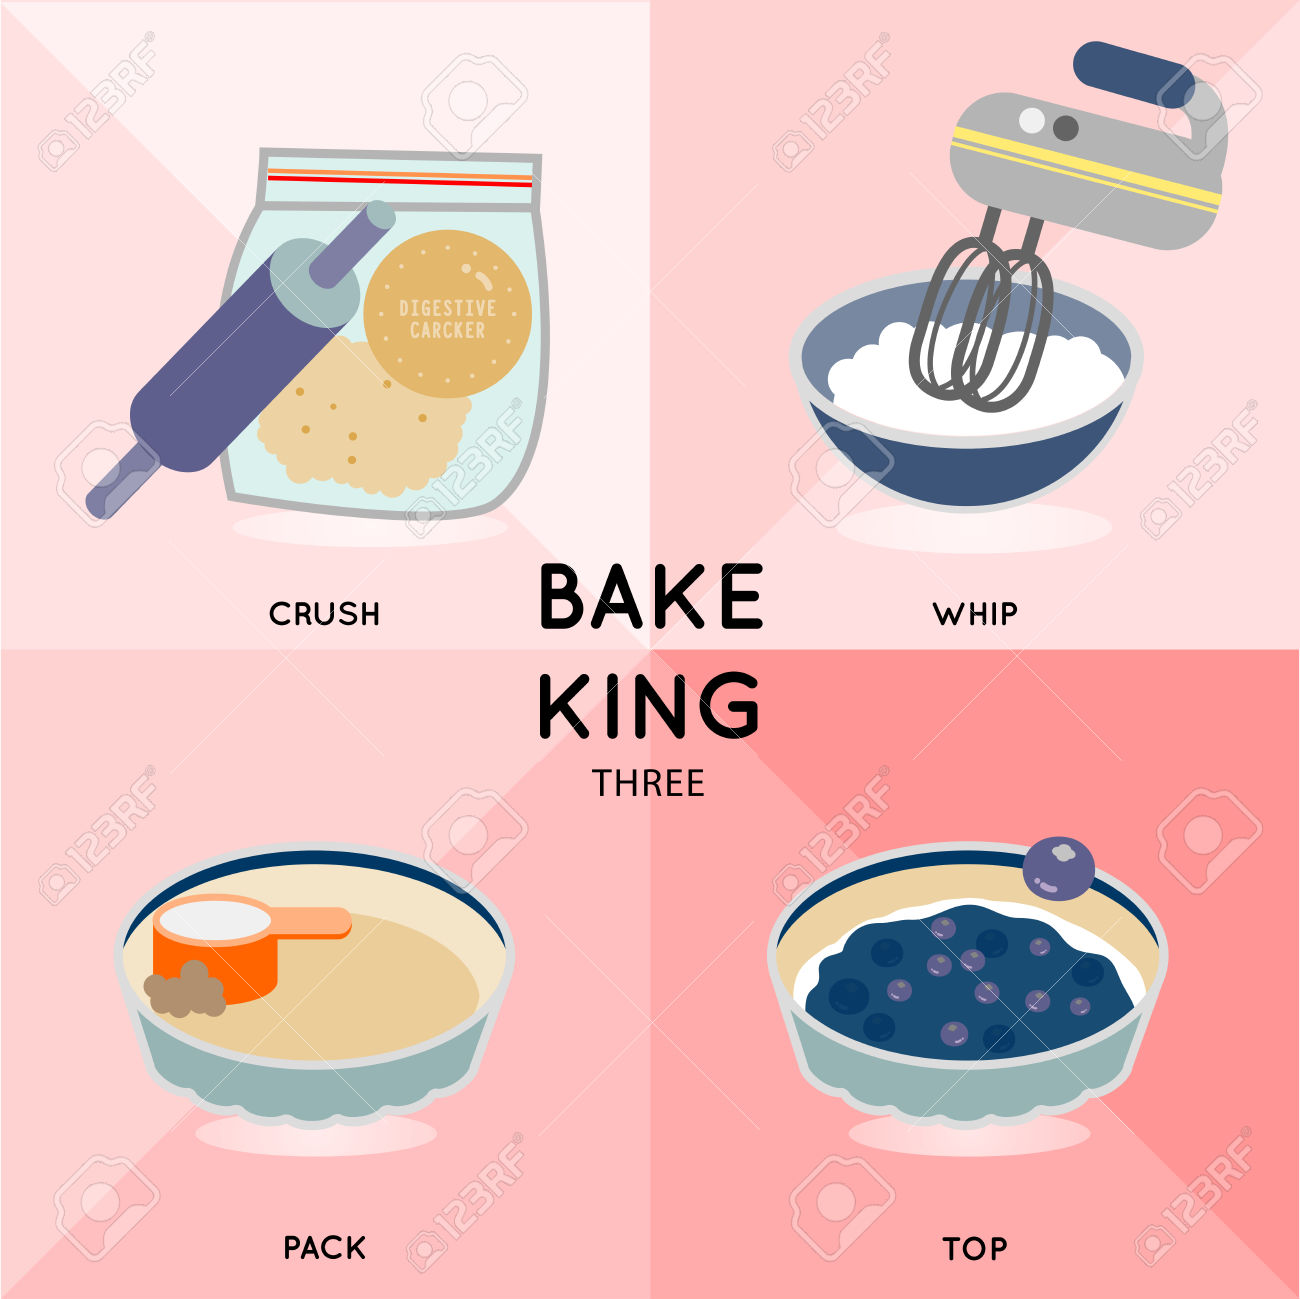 BAKE KING THREE How To Make Blueberry Cream Cheese Pie Is.